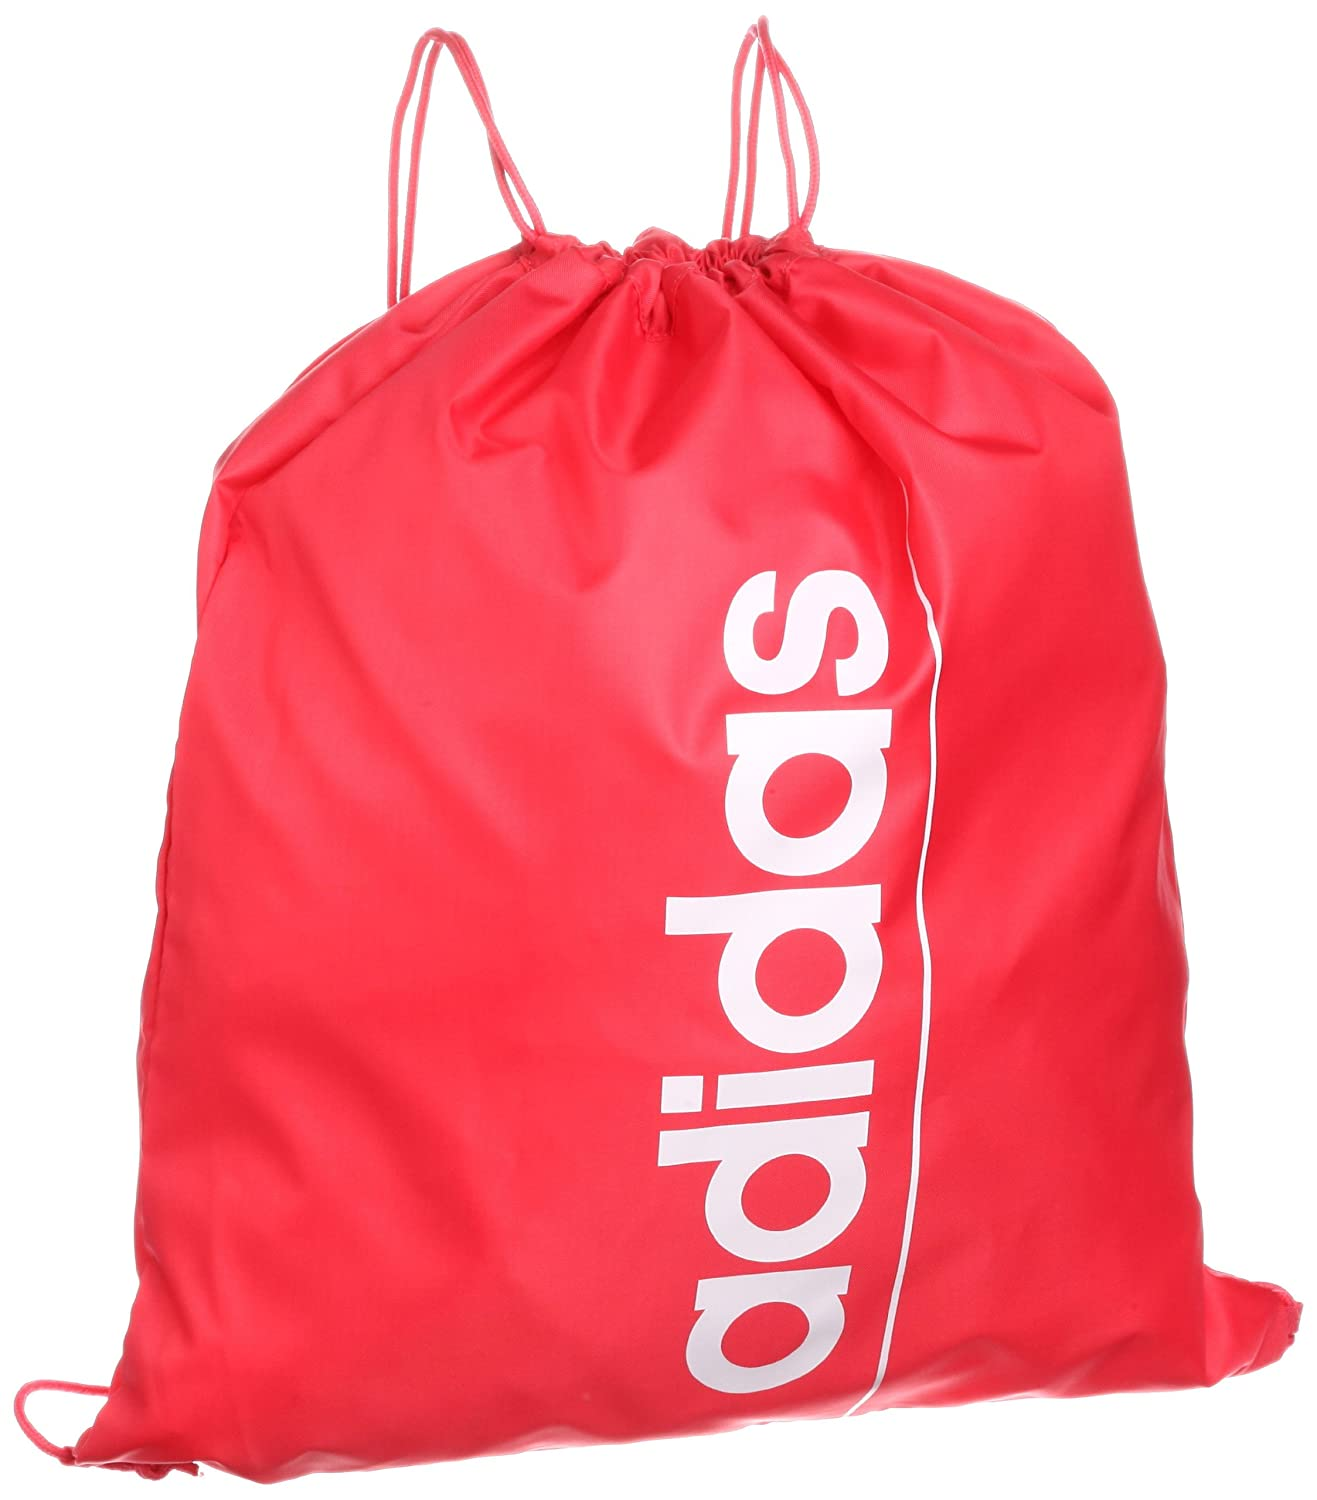 Adidas Gym Bag Linear Essential School Sports Shoe Drawstring Red White Z26361 New Amazoncouk Outdoors